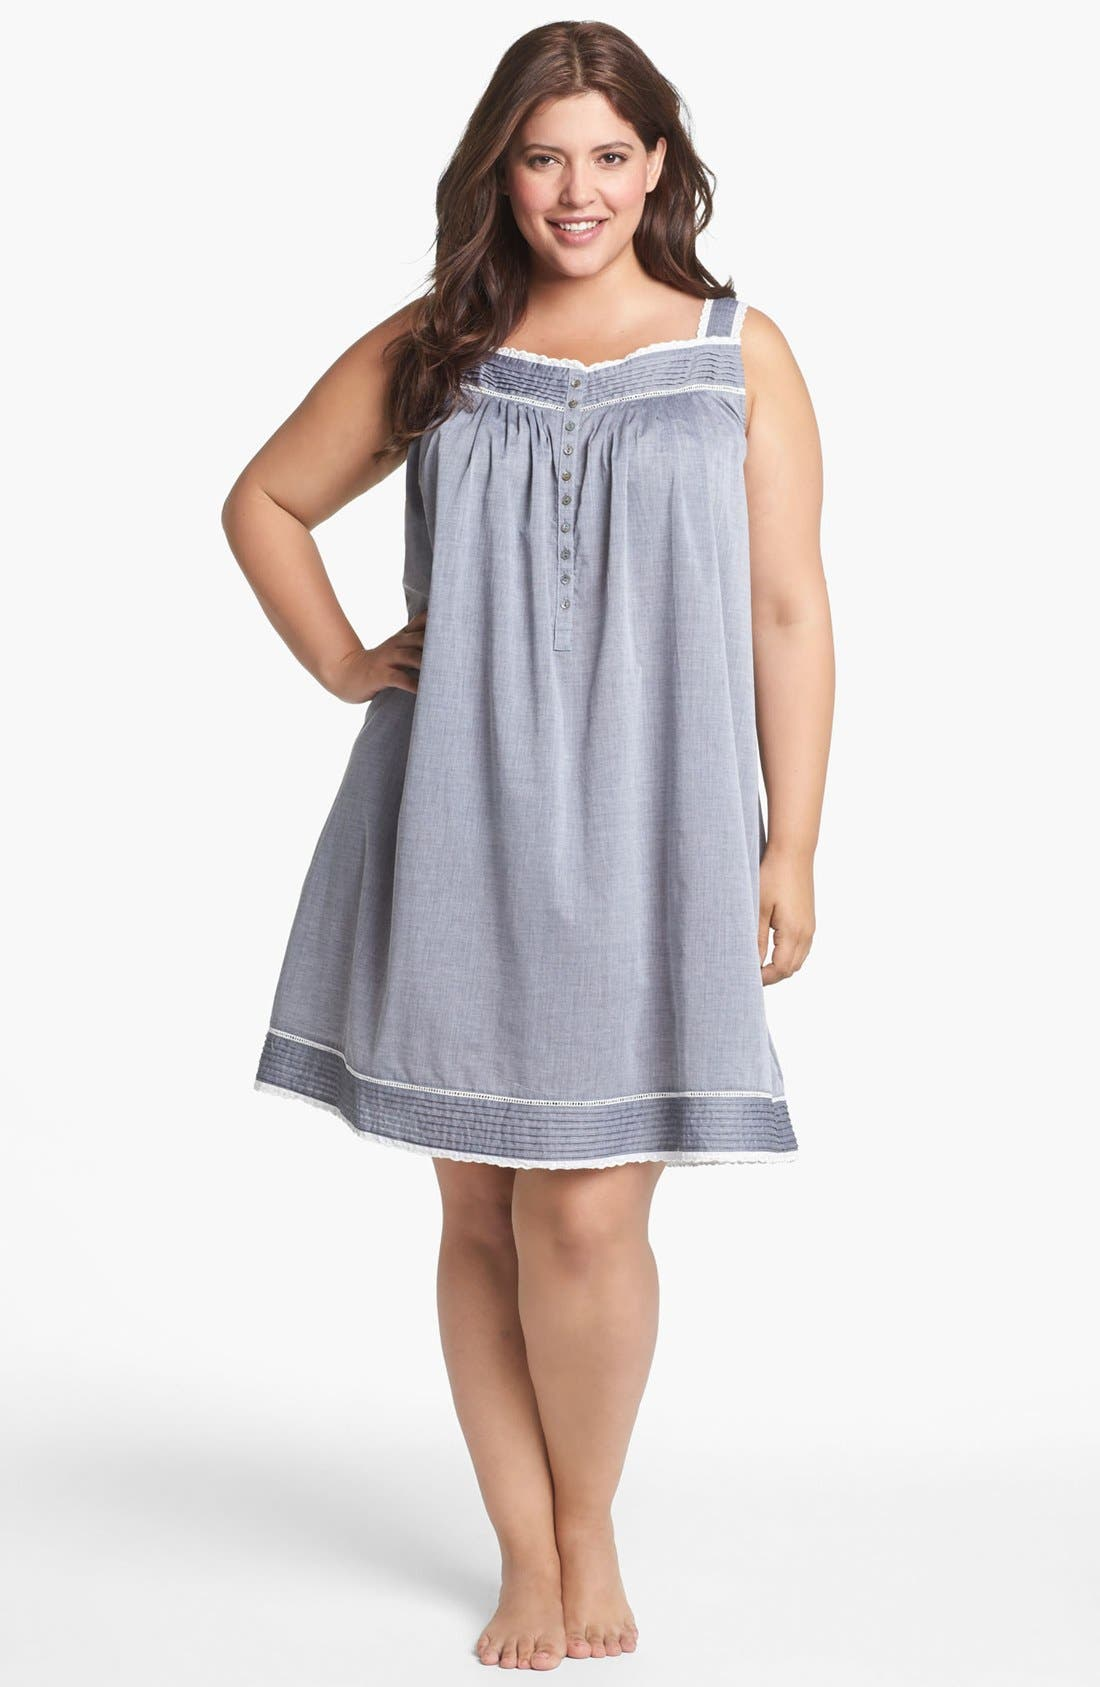 Main Image - Eileen West 'Delightful Day' Short Nightgown (Plus Size)